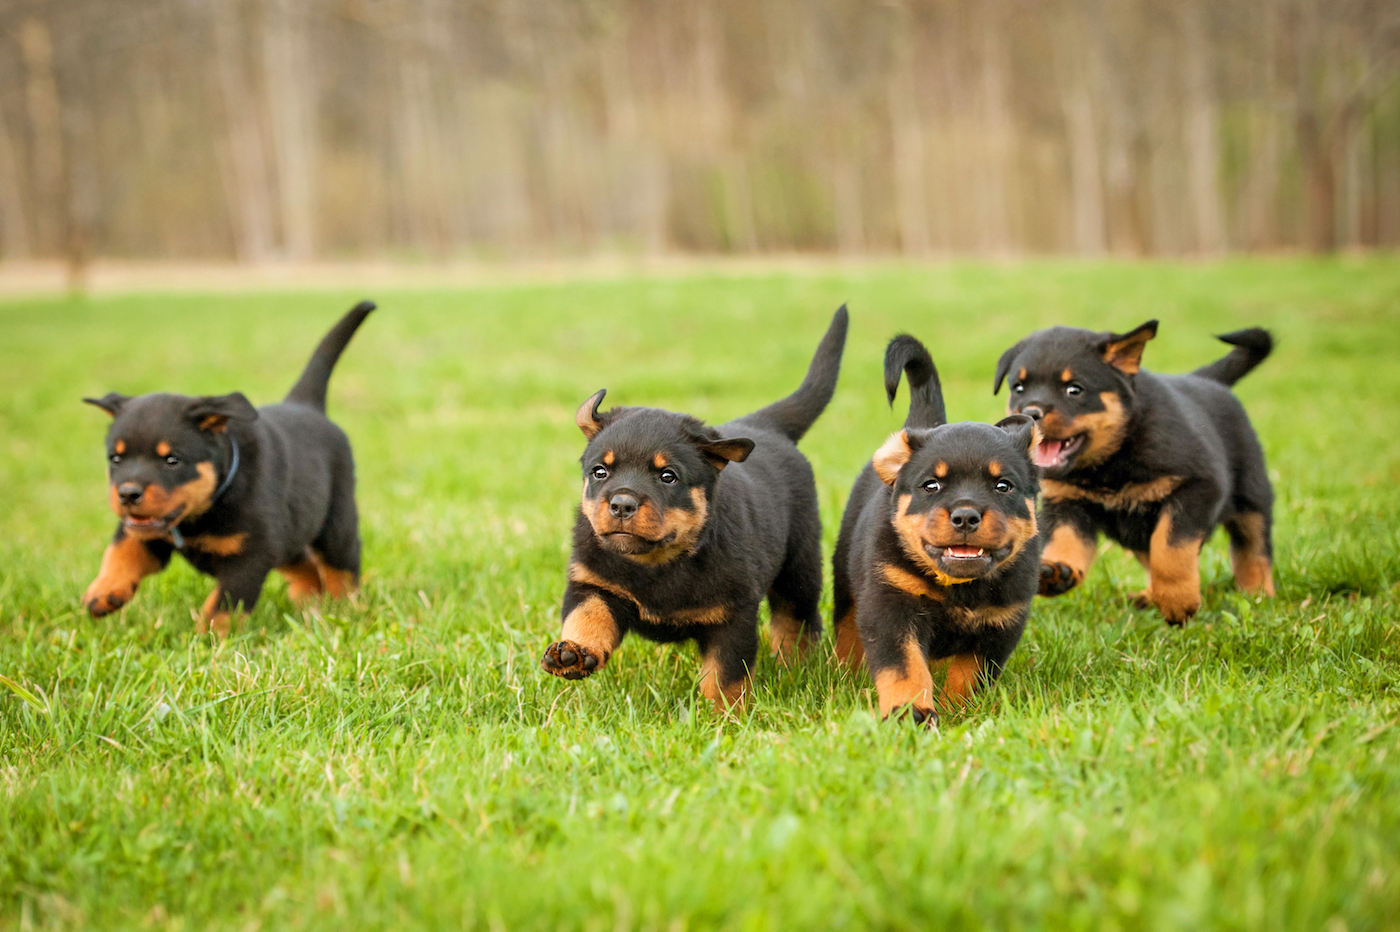 Four tiny Rottweiler puppies frolicking on a lawn